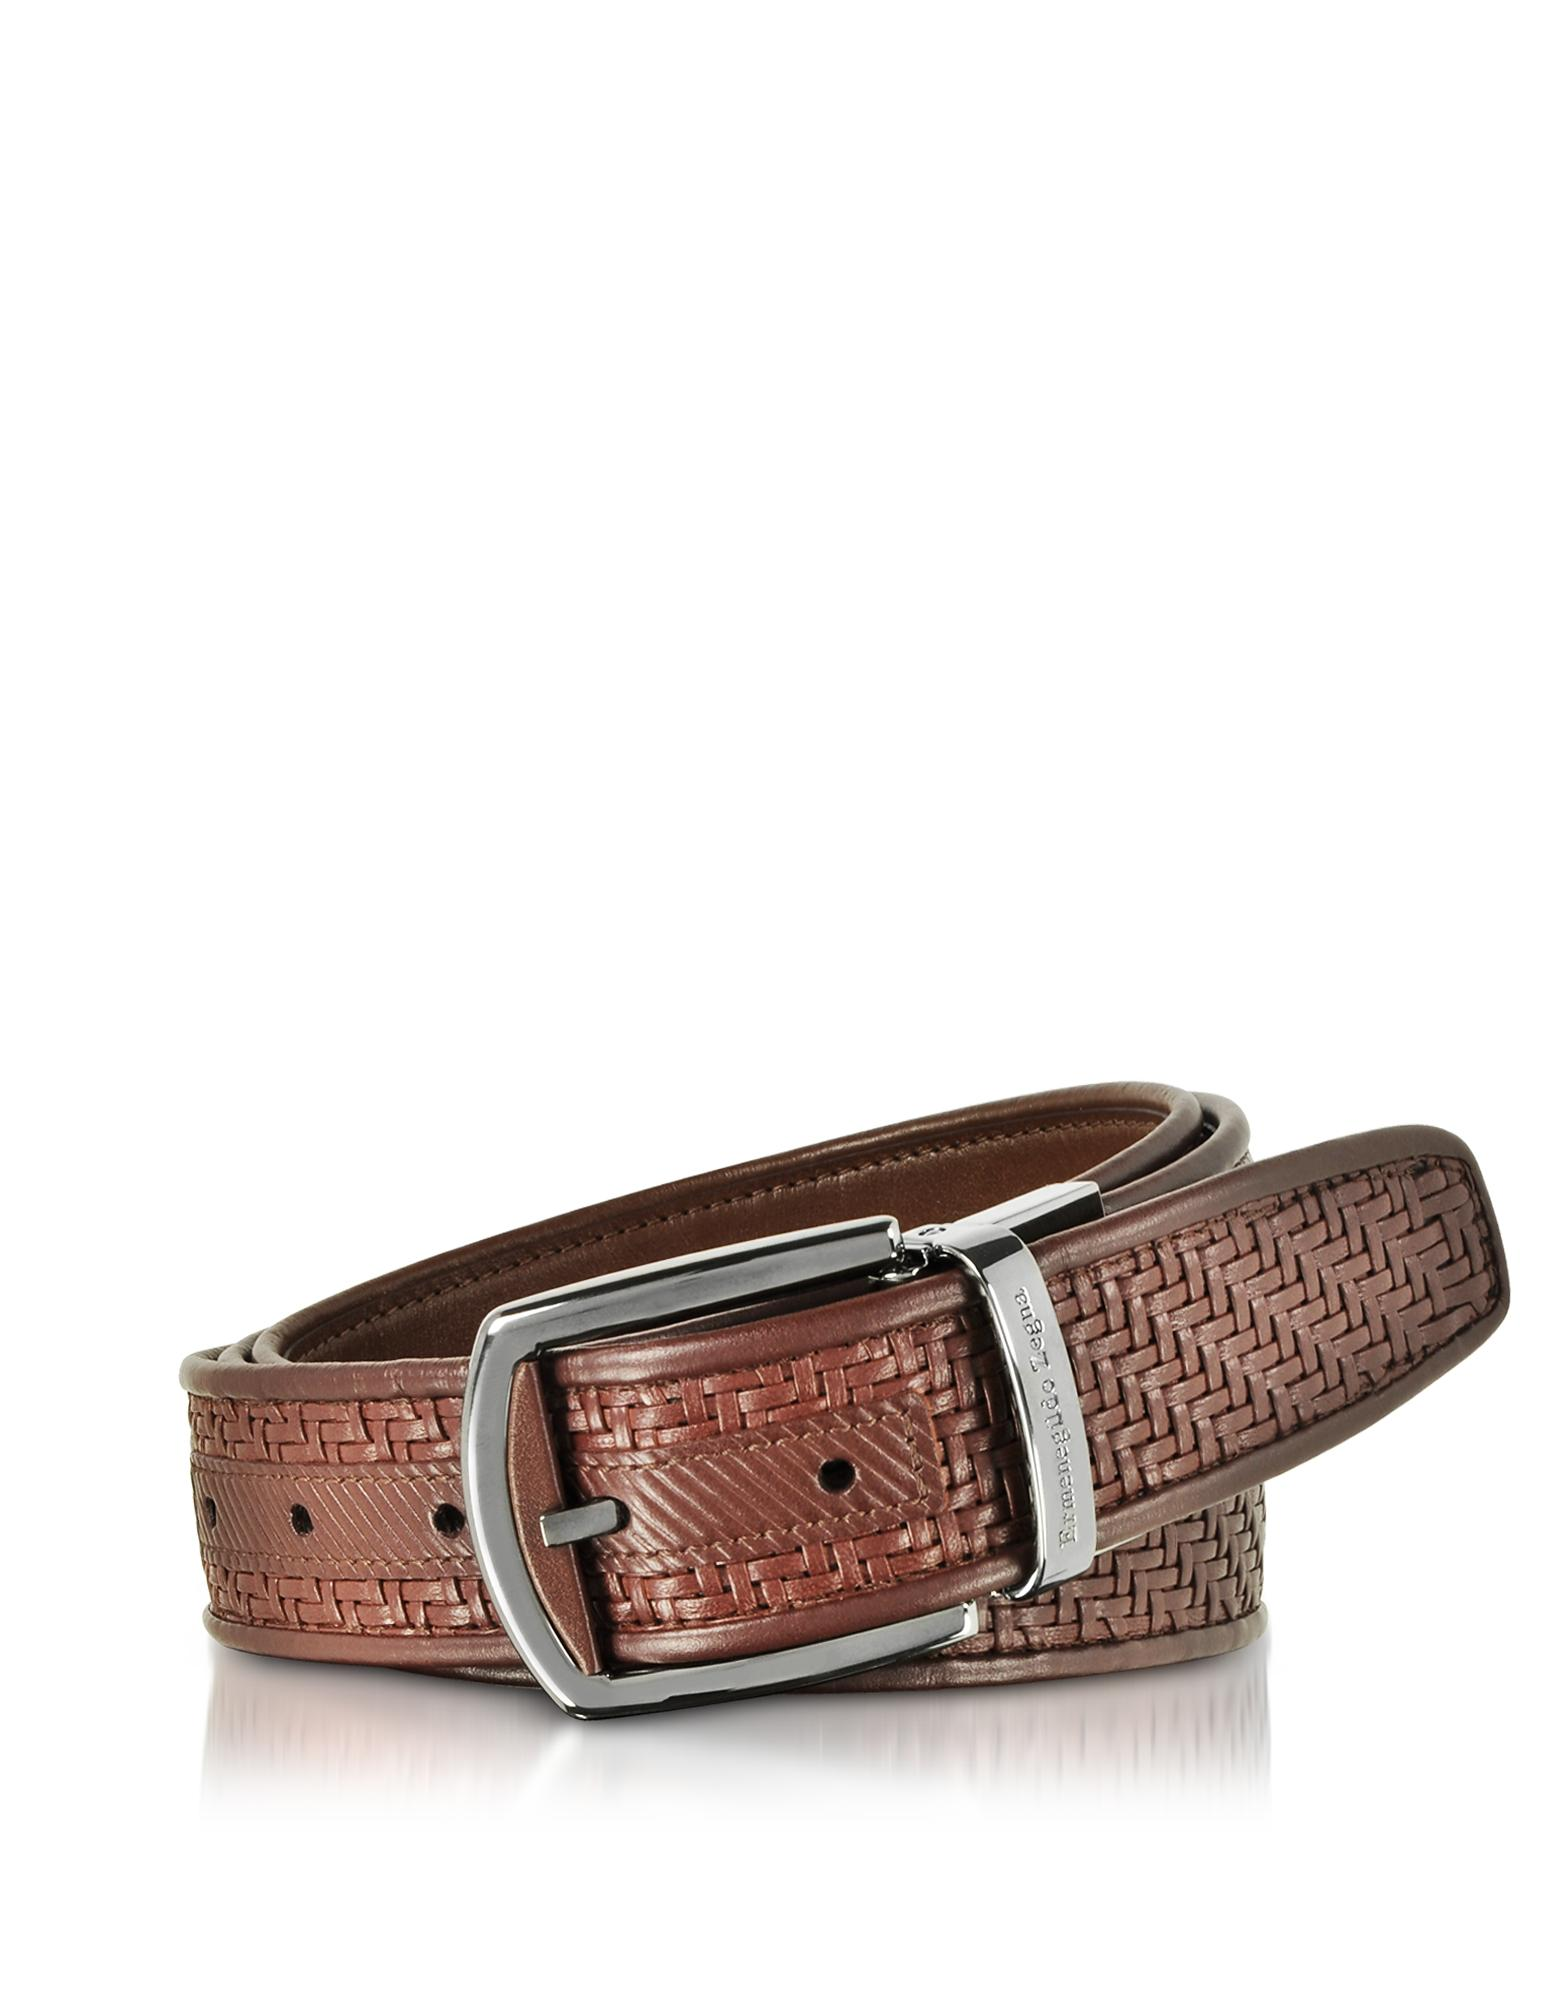 Ermenegildo Zegna Pelle Tessuta Vicuna Reversible Belt In Brown